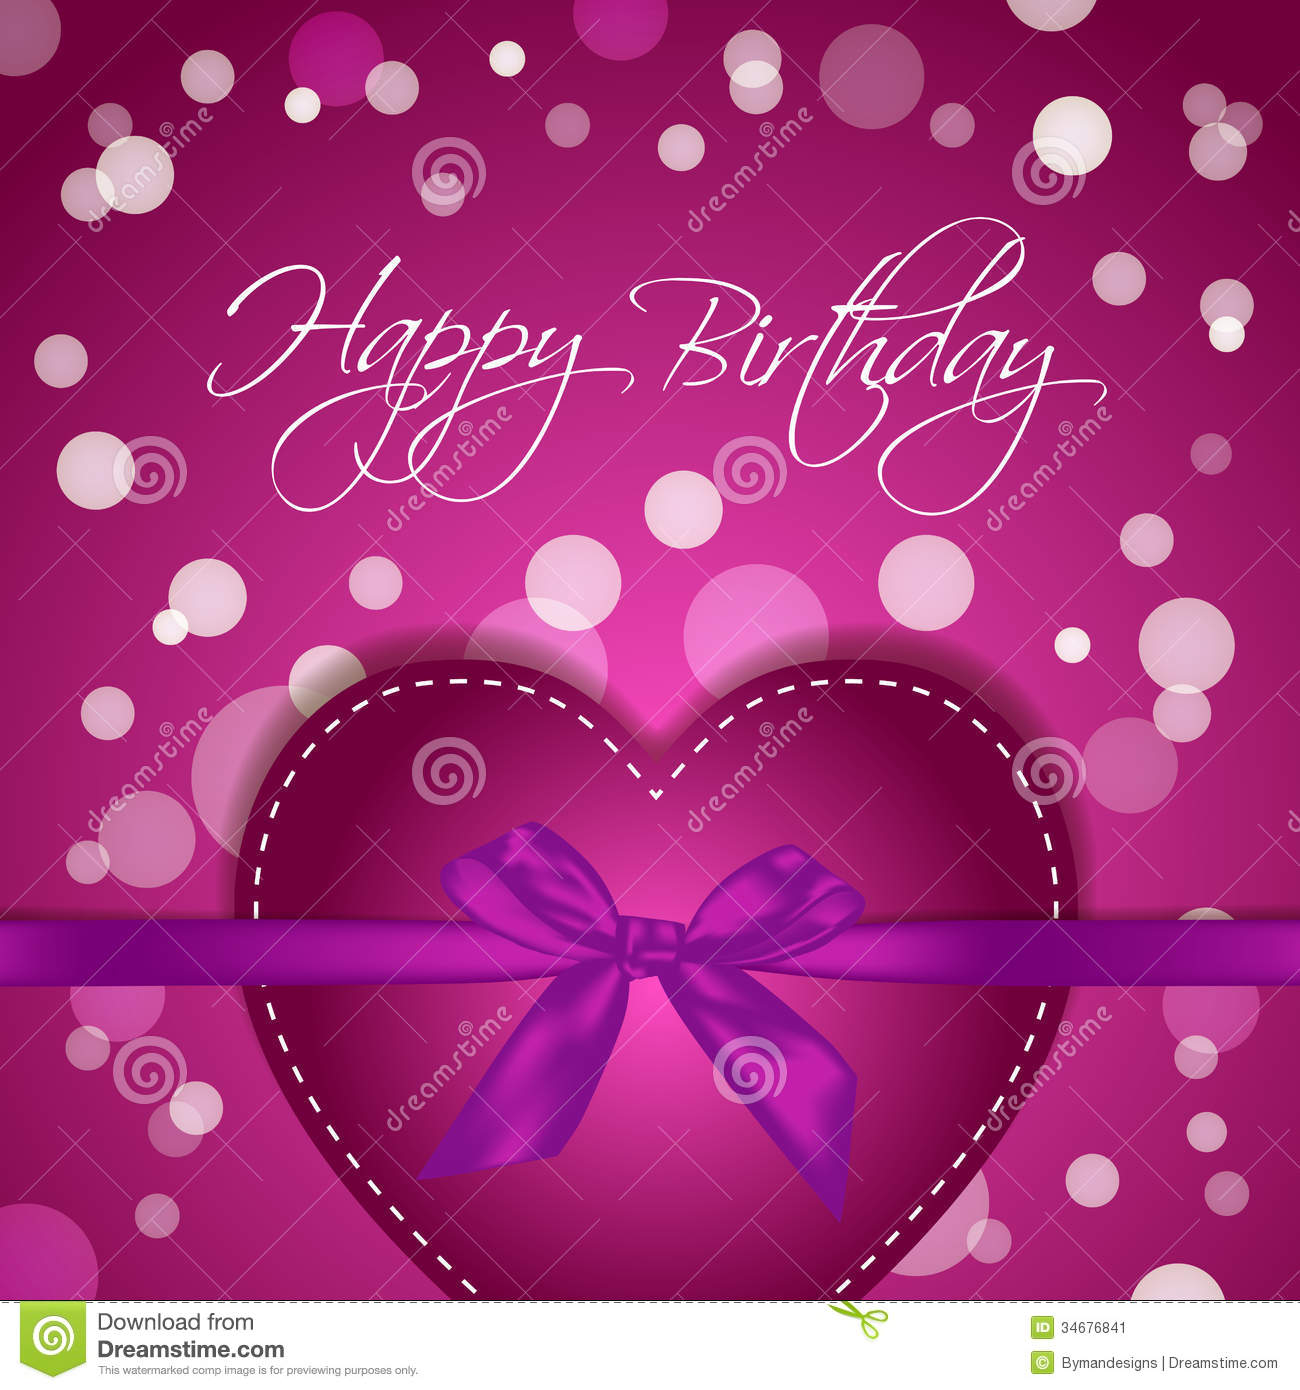 Heart Gift Greeting Card With Happy Birthday Message